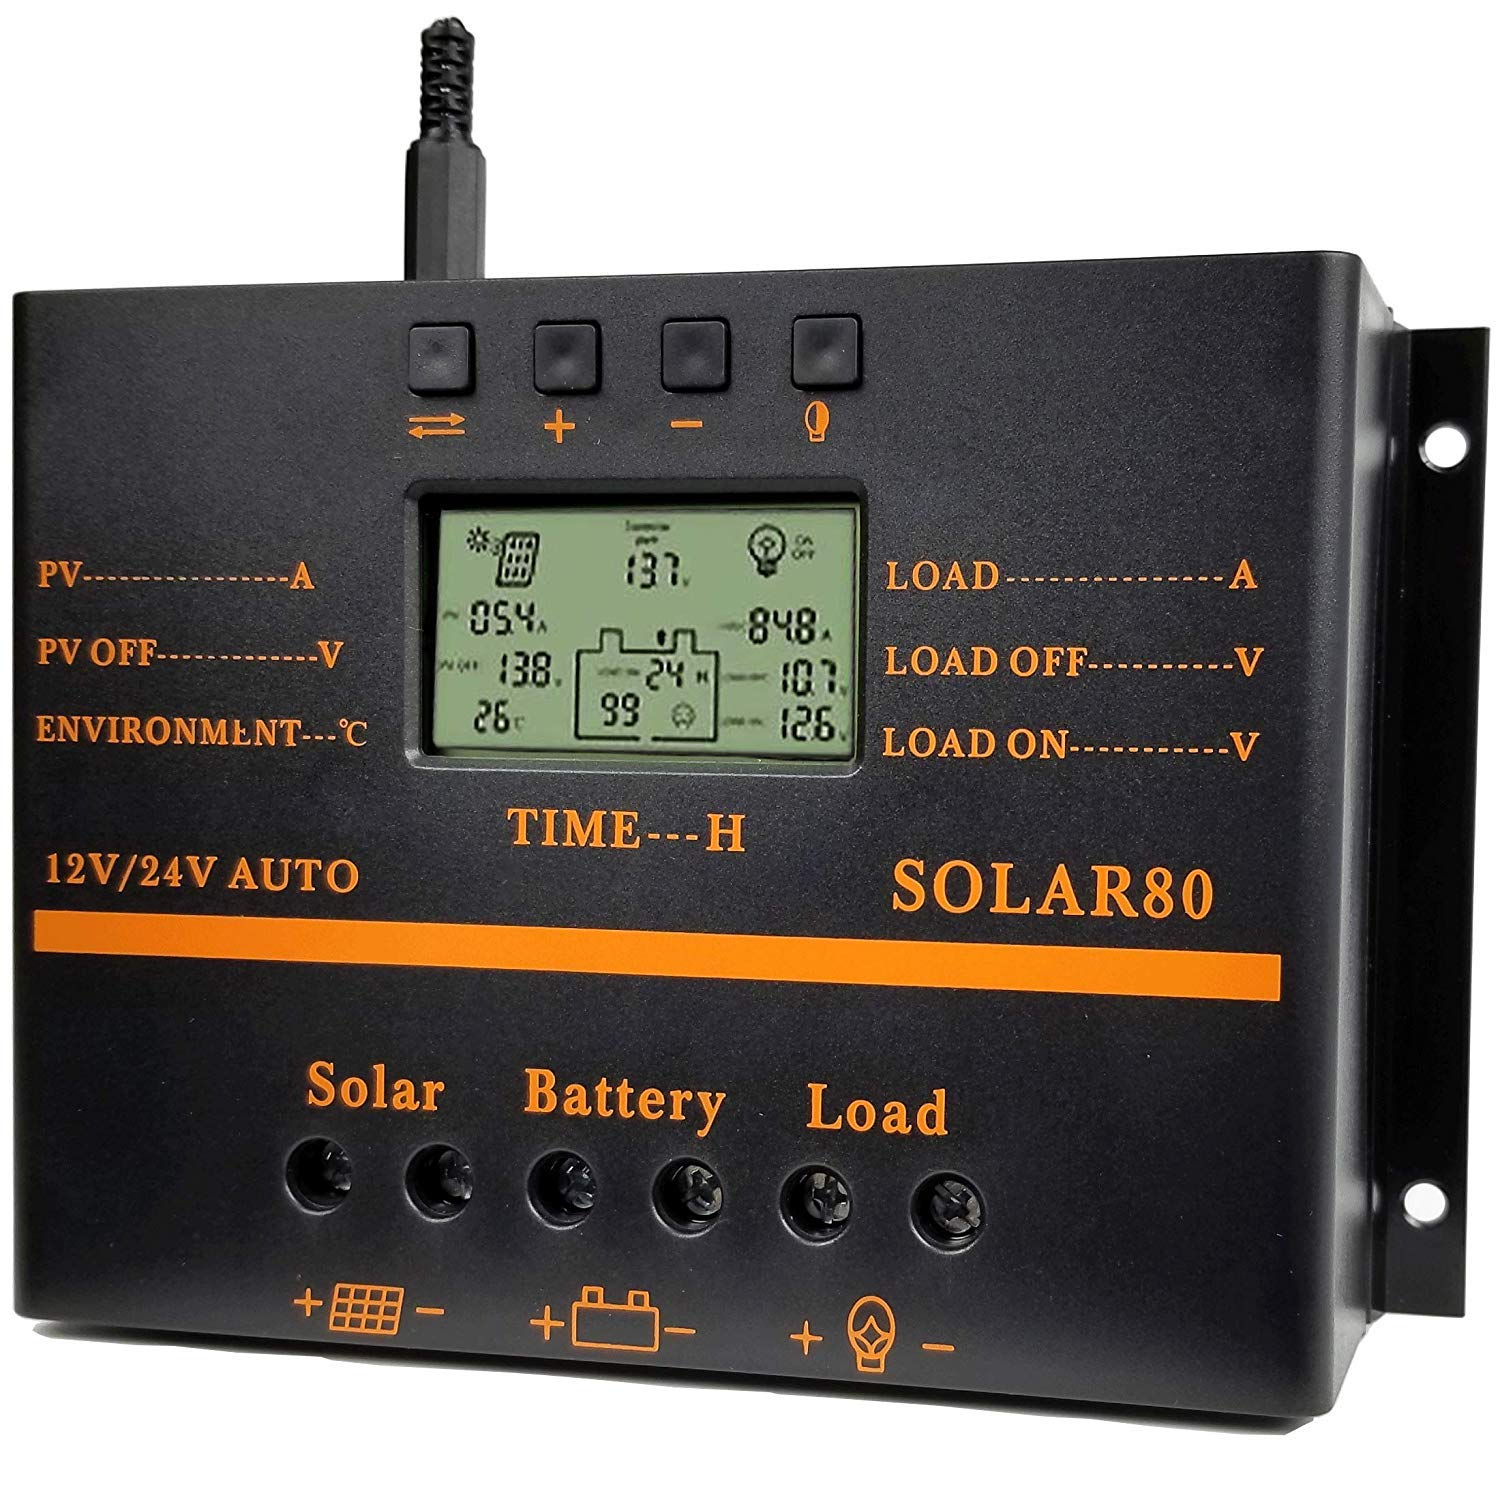 Y&H 80A Solar Charge Controller 12V 24V LCD Display USB Output Solar Panel Controller Multip Circuit Protection Solar Charger Discharge Regulator for Lighting System,with Dark Activated Function